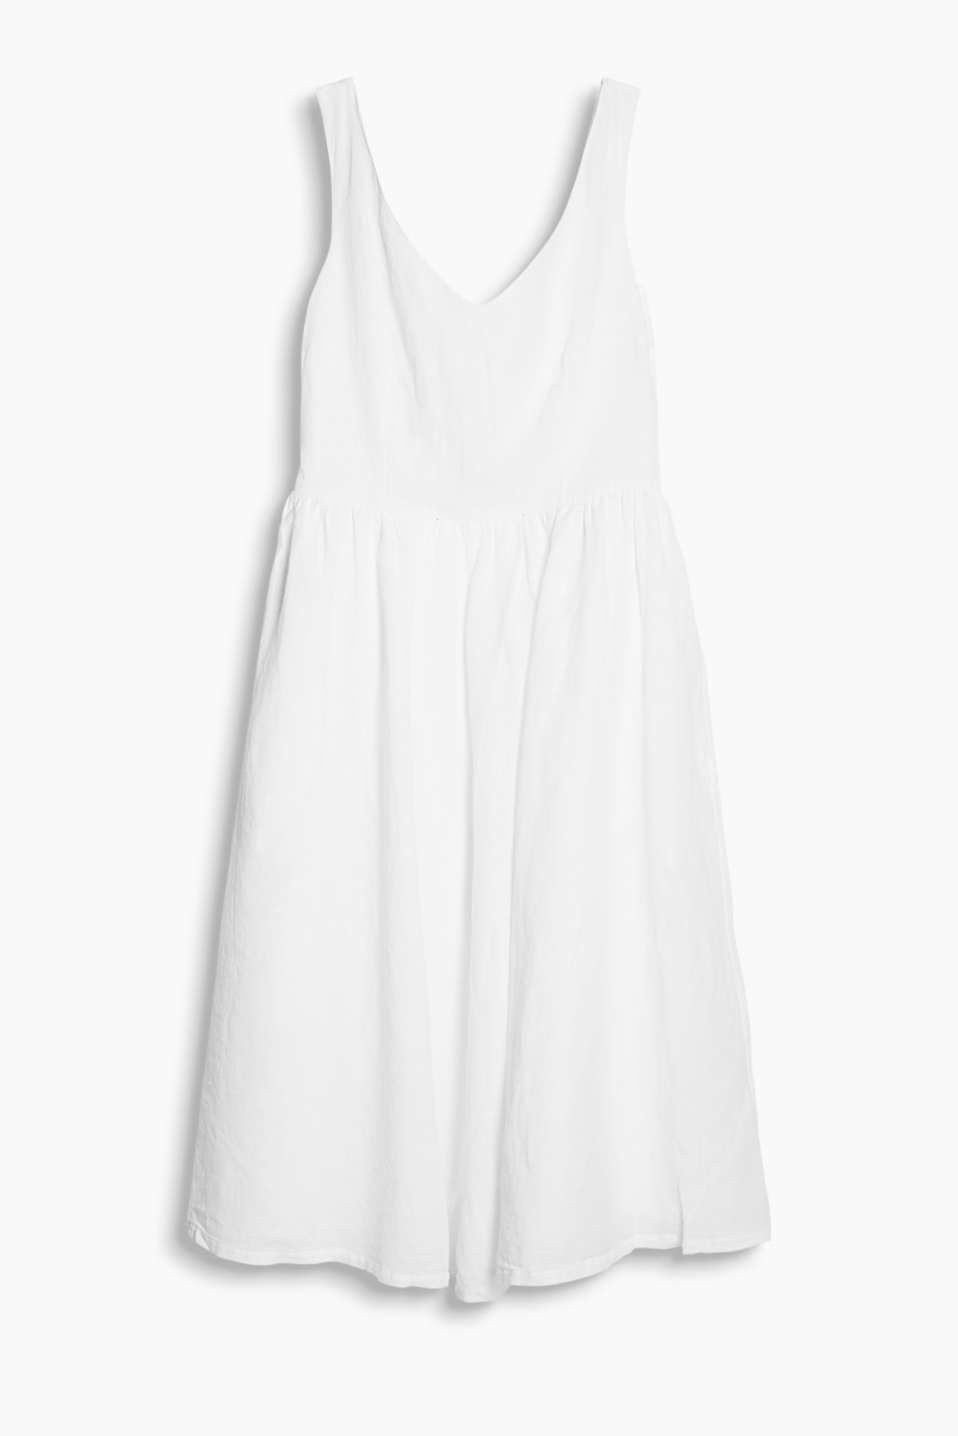 We love it! Flared dress in airy blended linen with a bow on the back